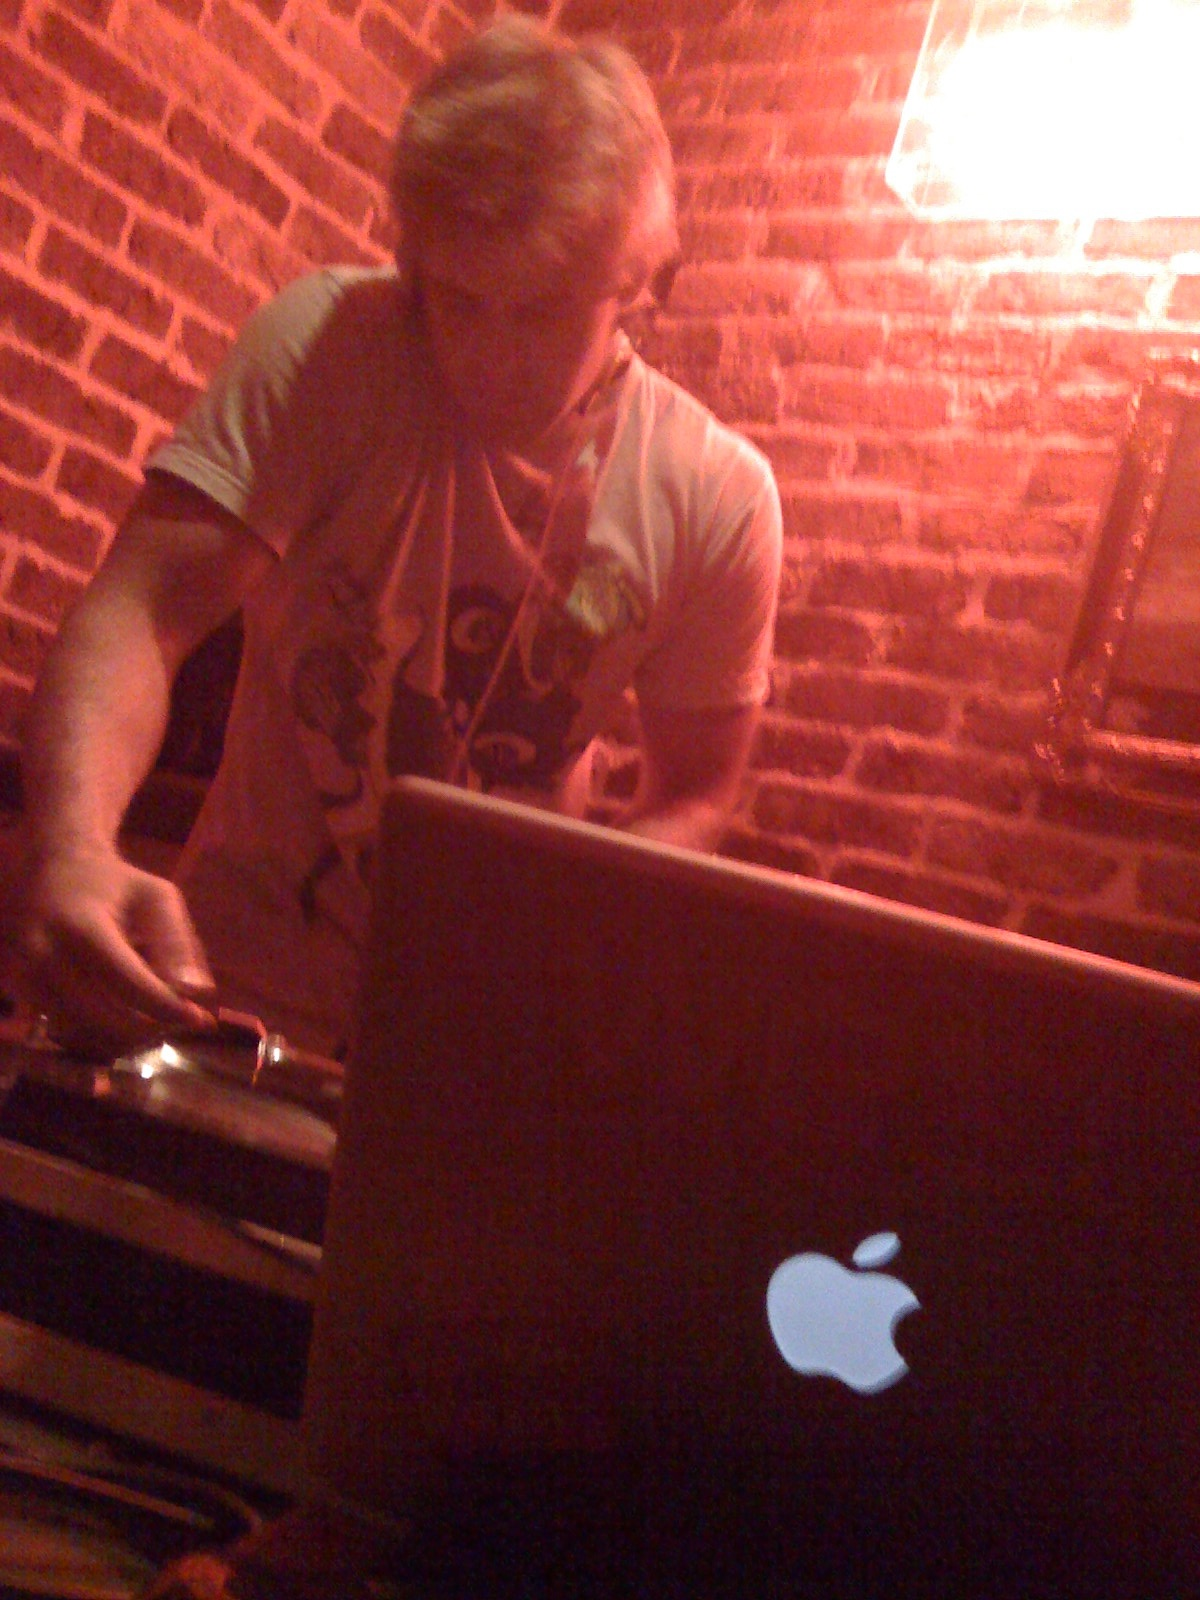 The glowing Apple is cool, but do you really need a Mac to DJ with? Pic: iCreate